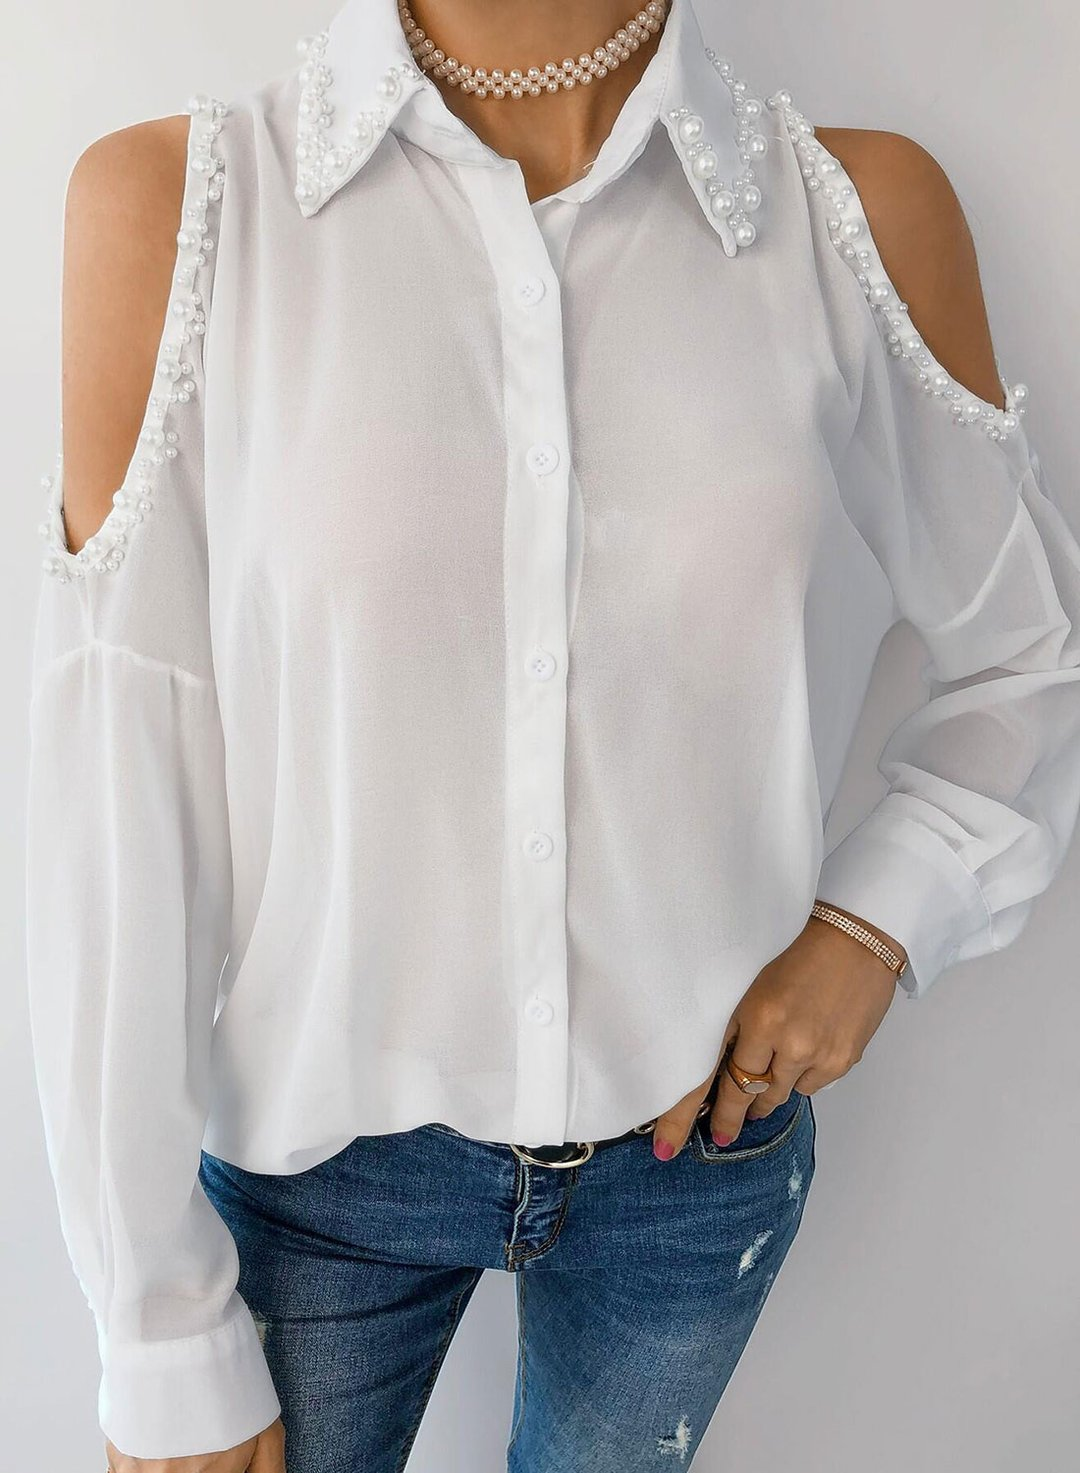 White Women's Shirts Solid Long Sleeve Turn Down Collar Cold Shoulder Daily Casual Shirt LC255885-1